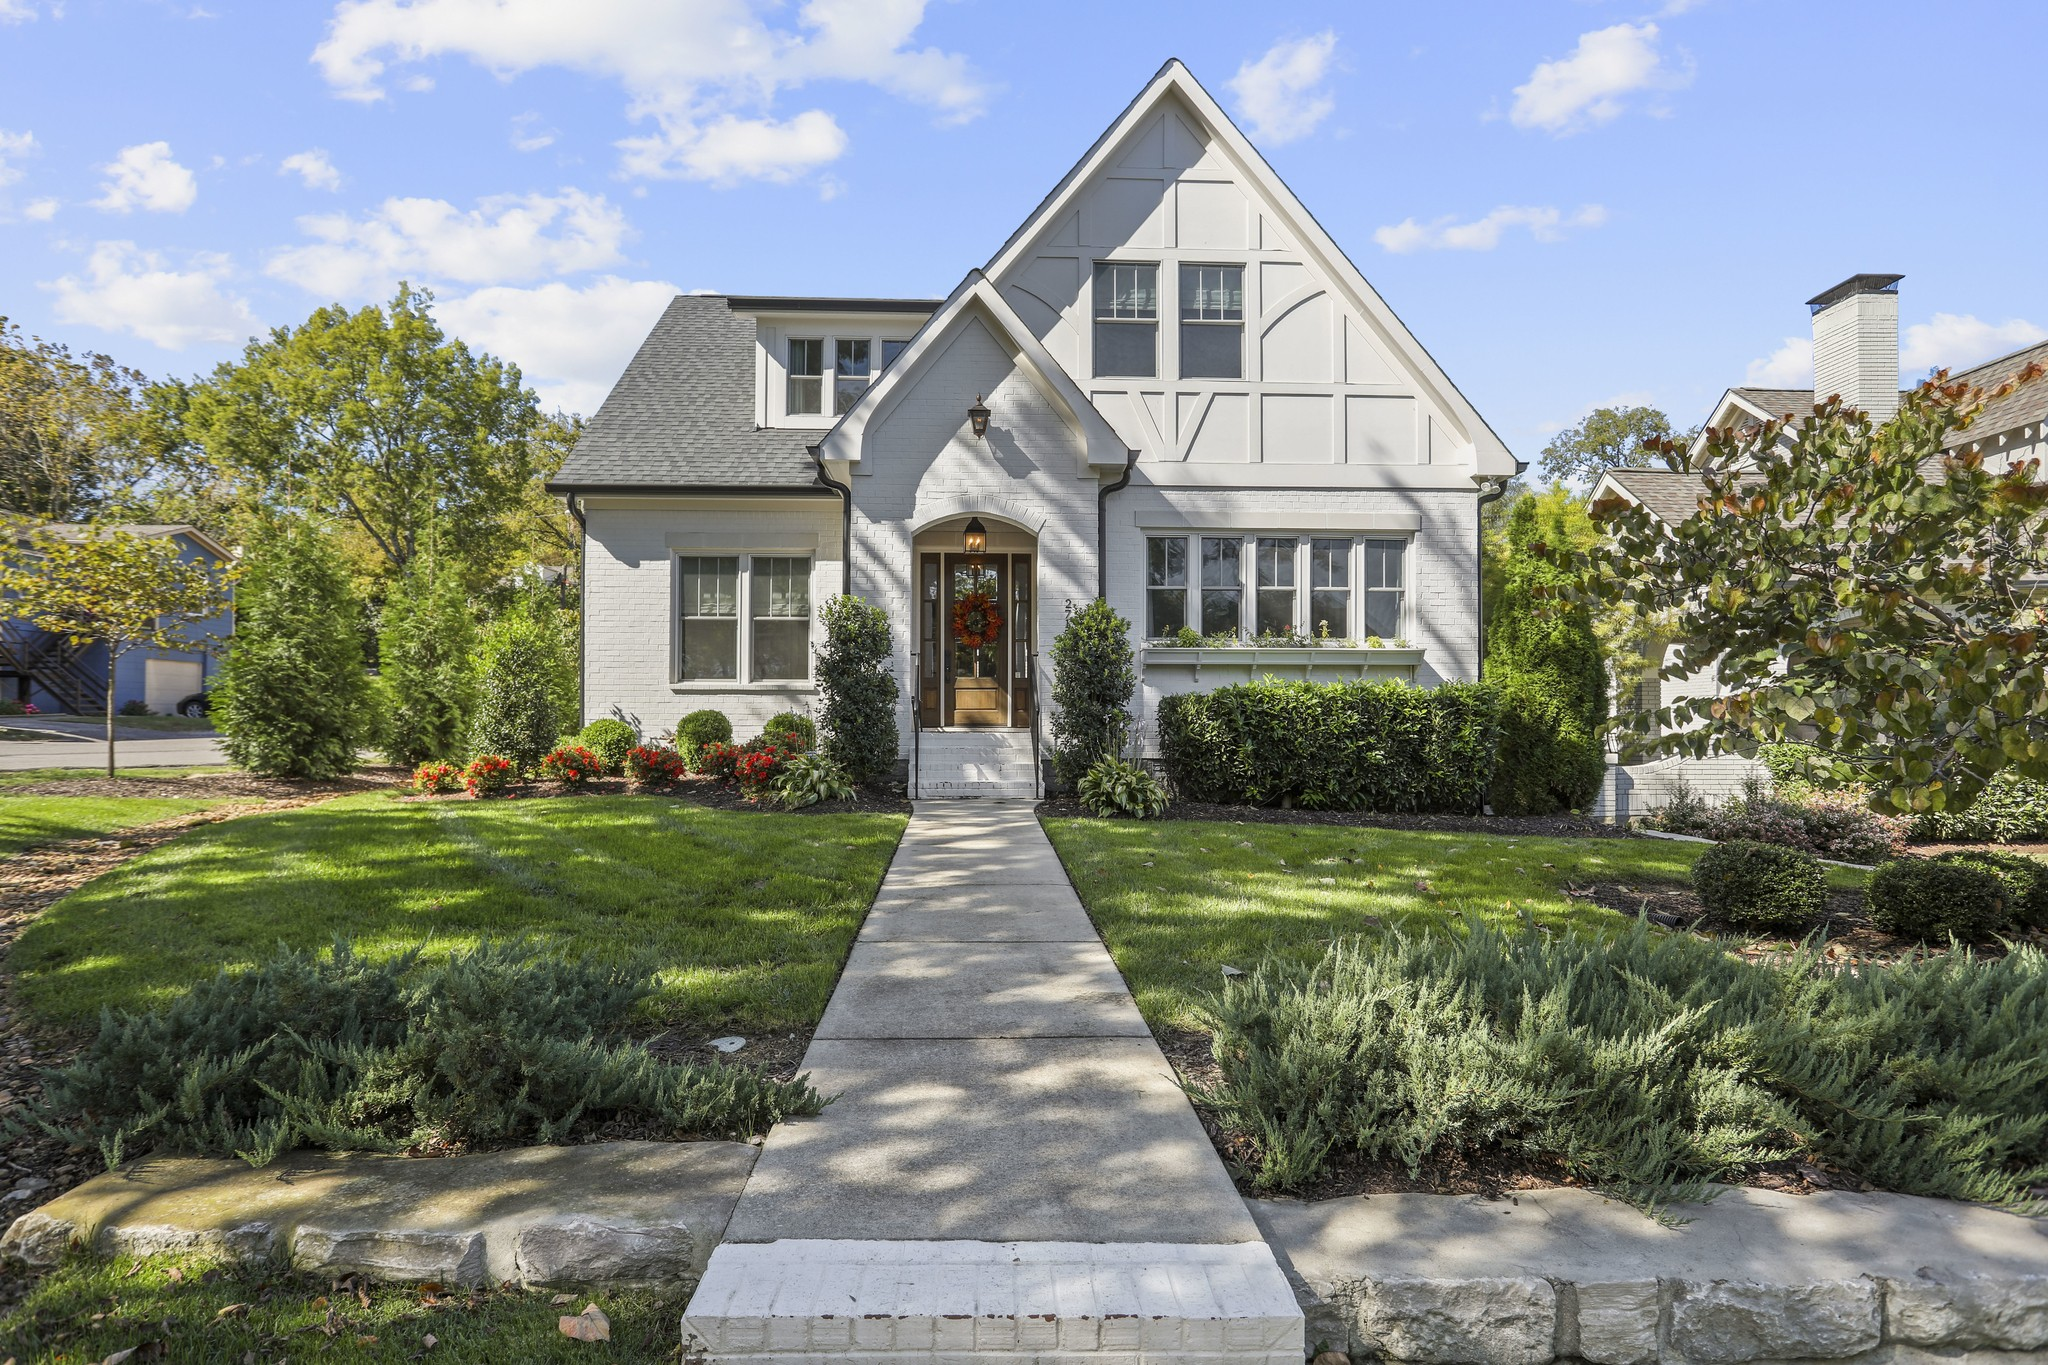 2715 Brightwood Ave Property Photo - Nashville, TN real estate listing